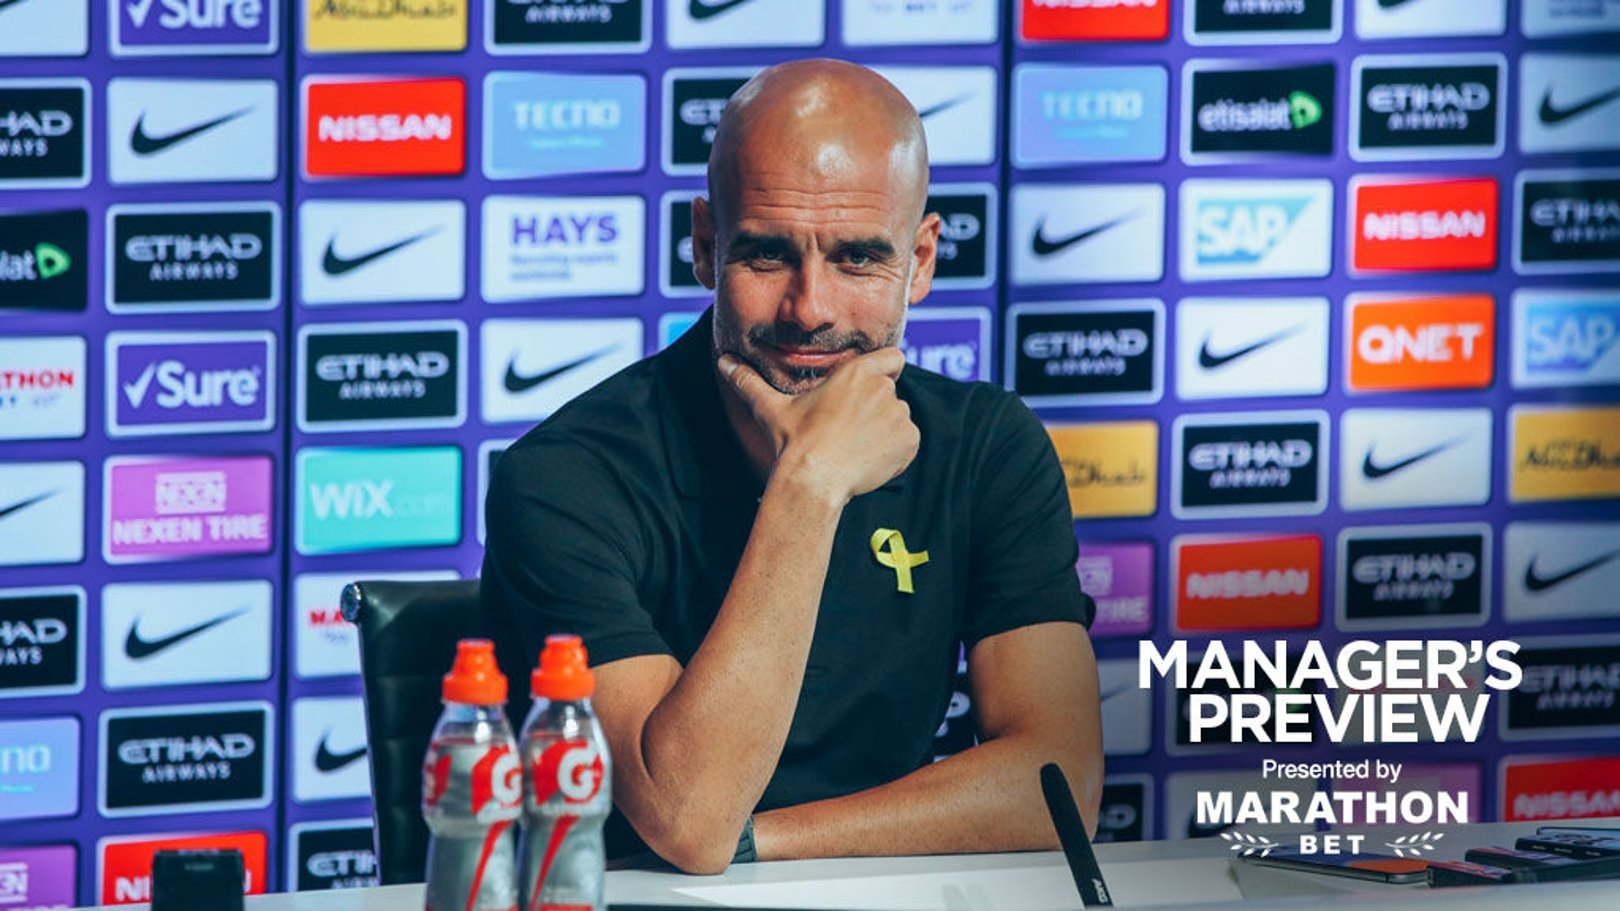 PREVIEW: Pep speaks to the media ahead of City's home game against Huddersfield.